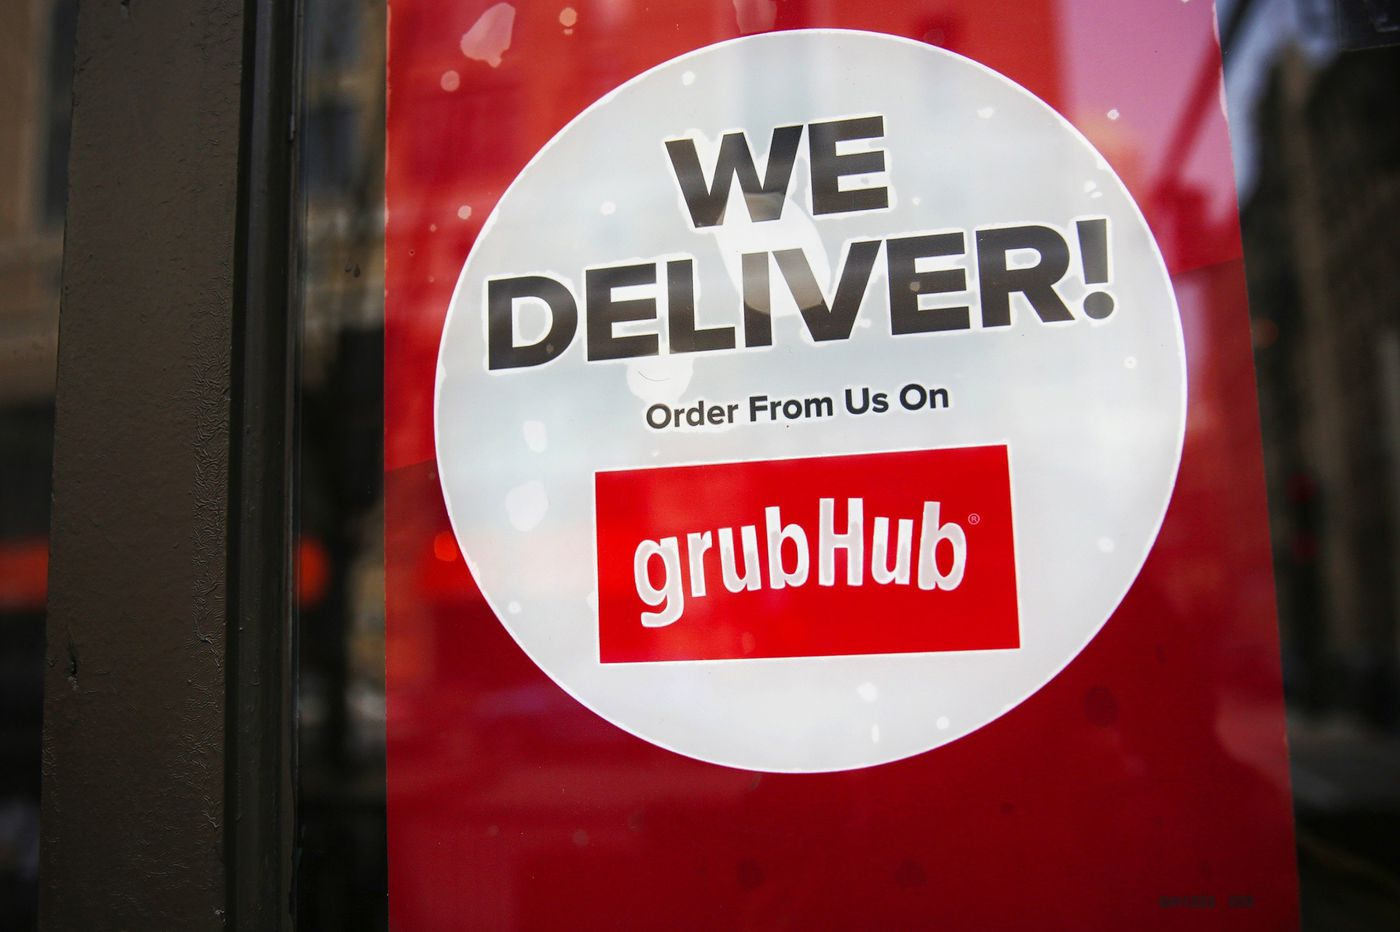 Philly restaurant says Grubhub 'stole' millions from eateries by charging for 'sham' phone orders